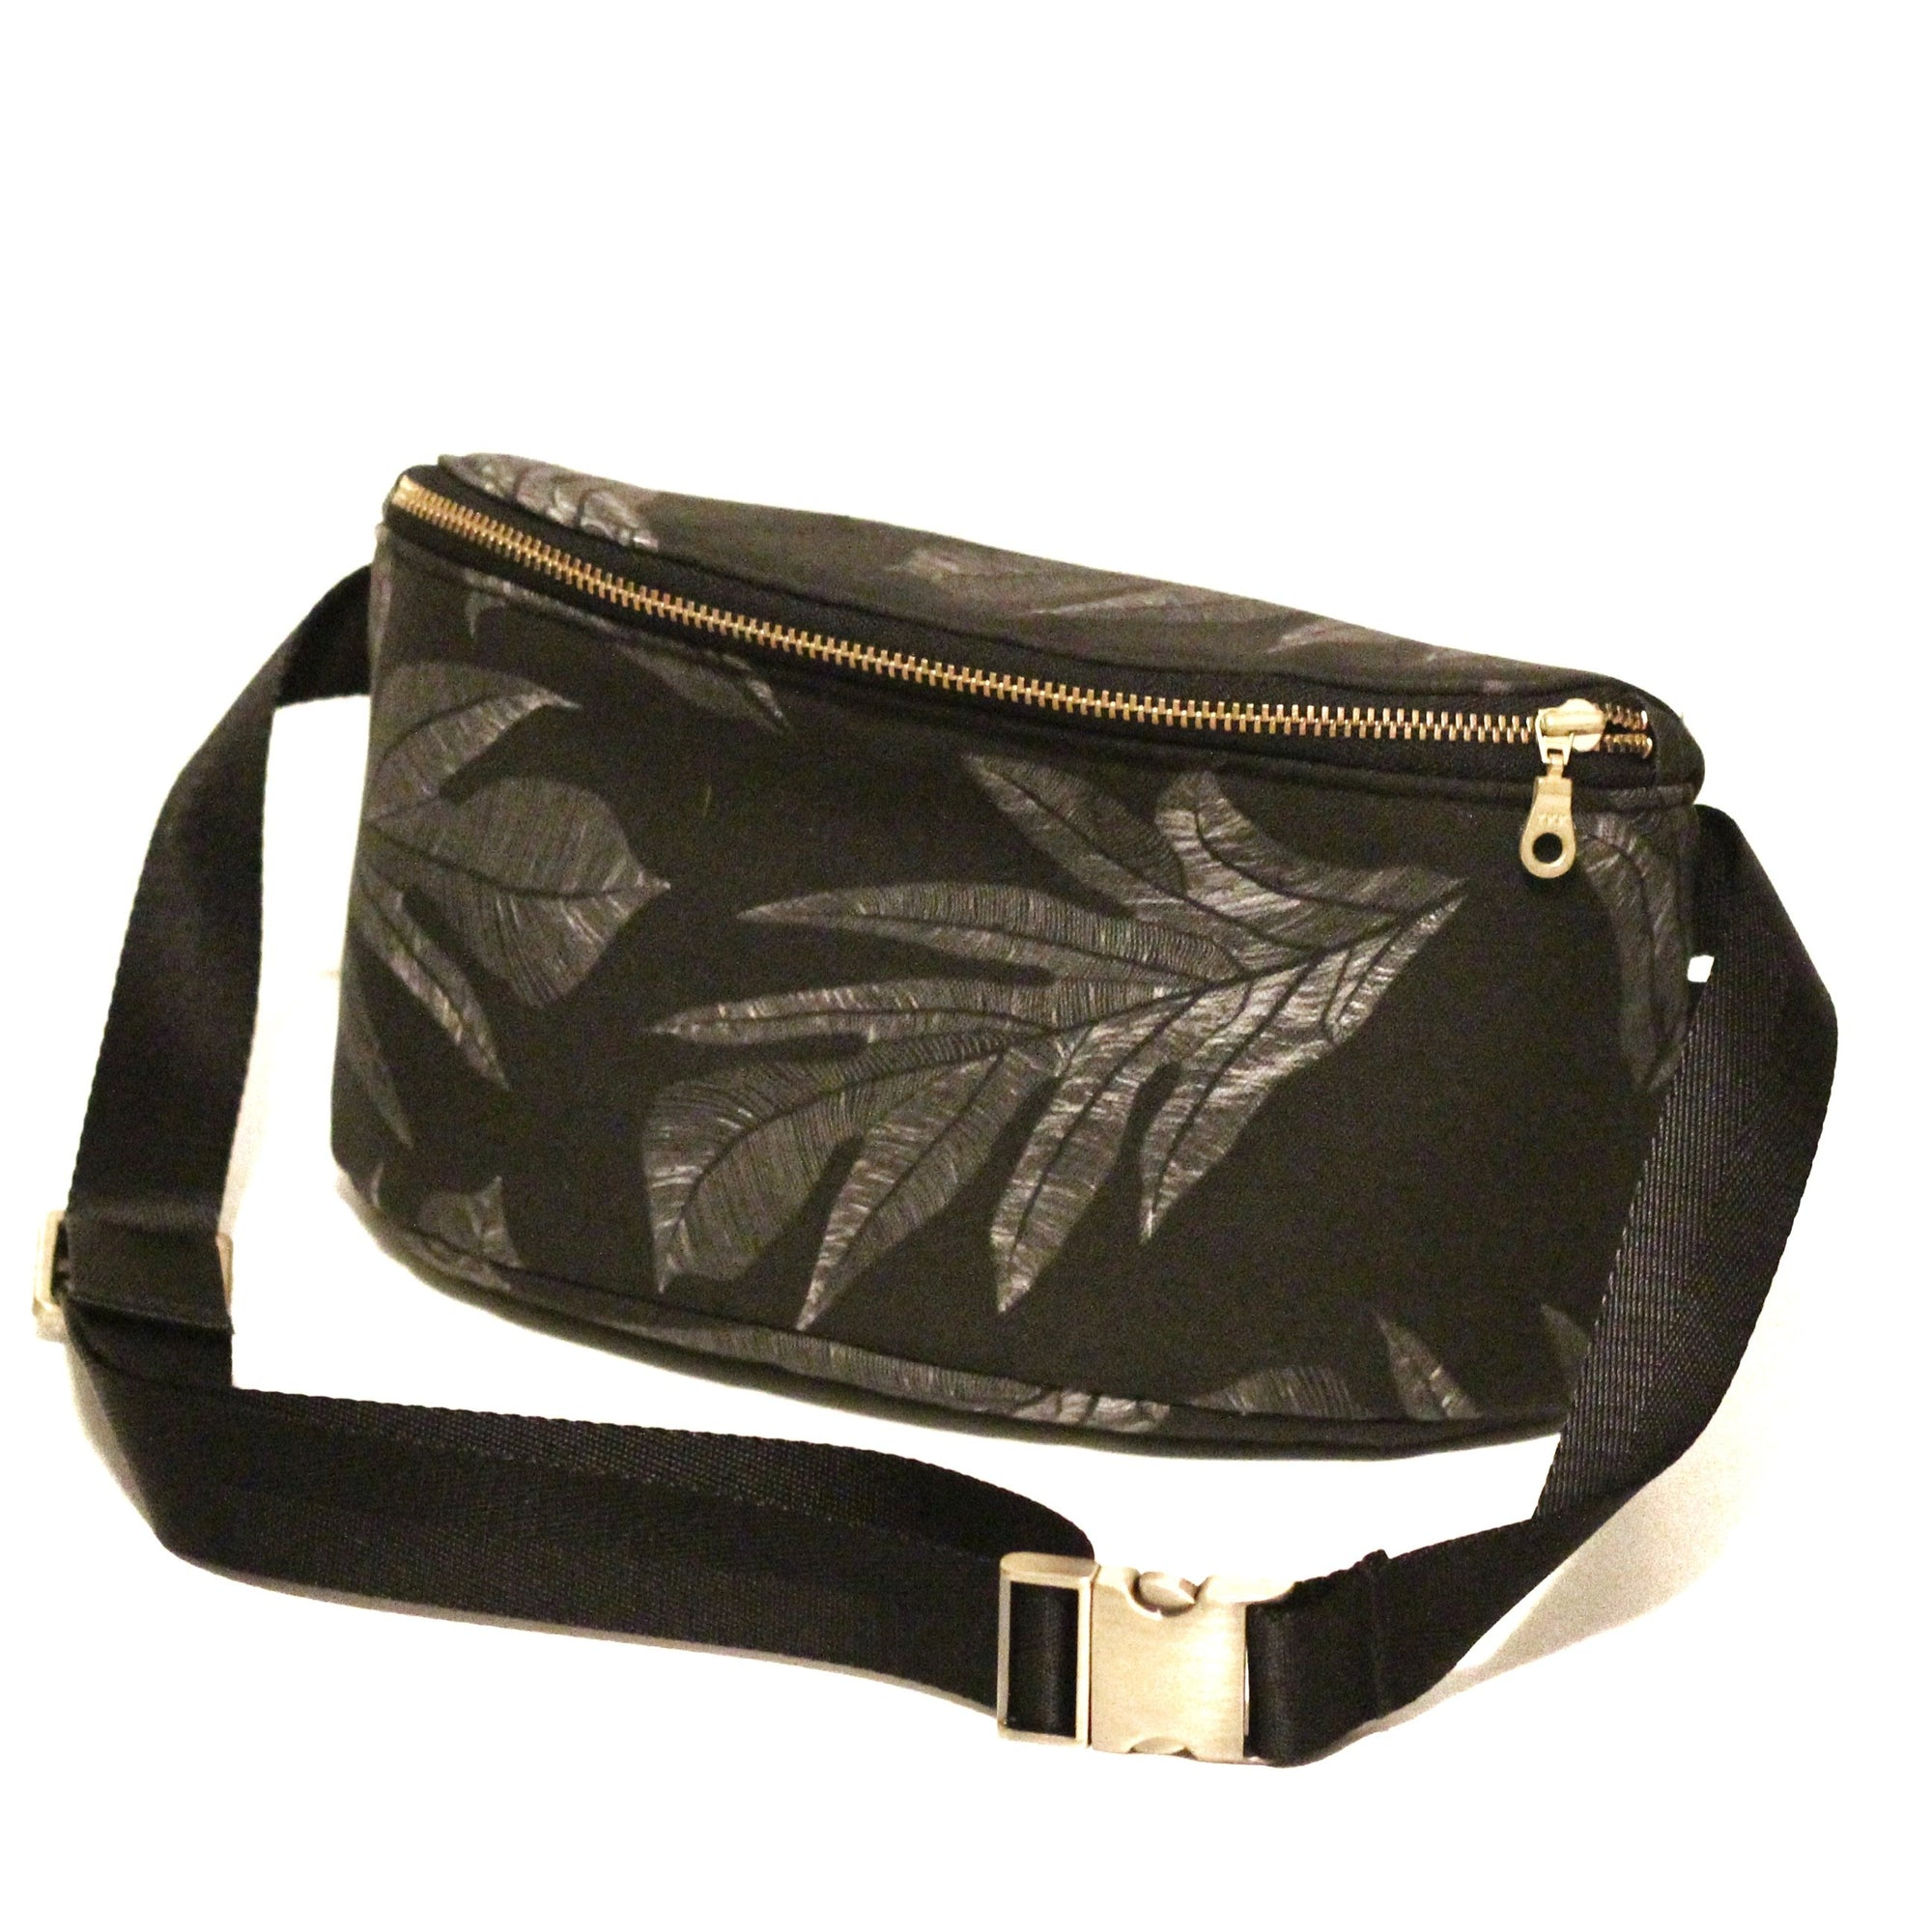 Black 'Ulu Hip Pack